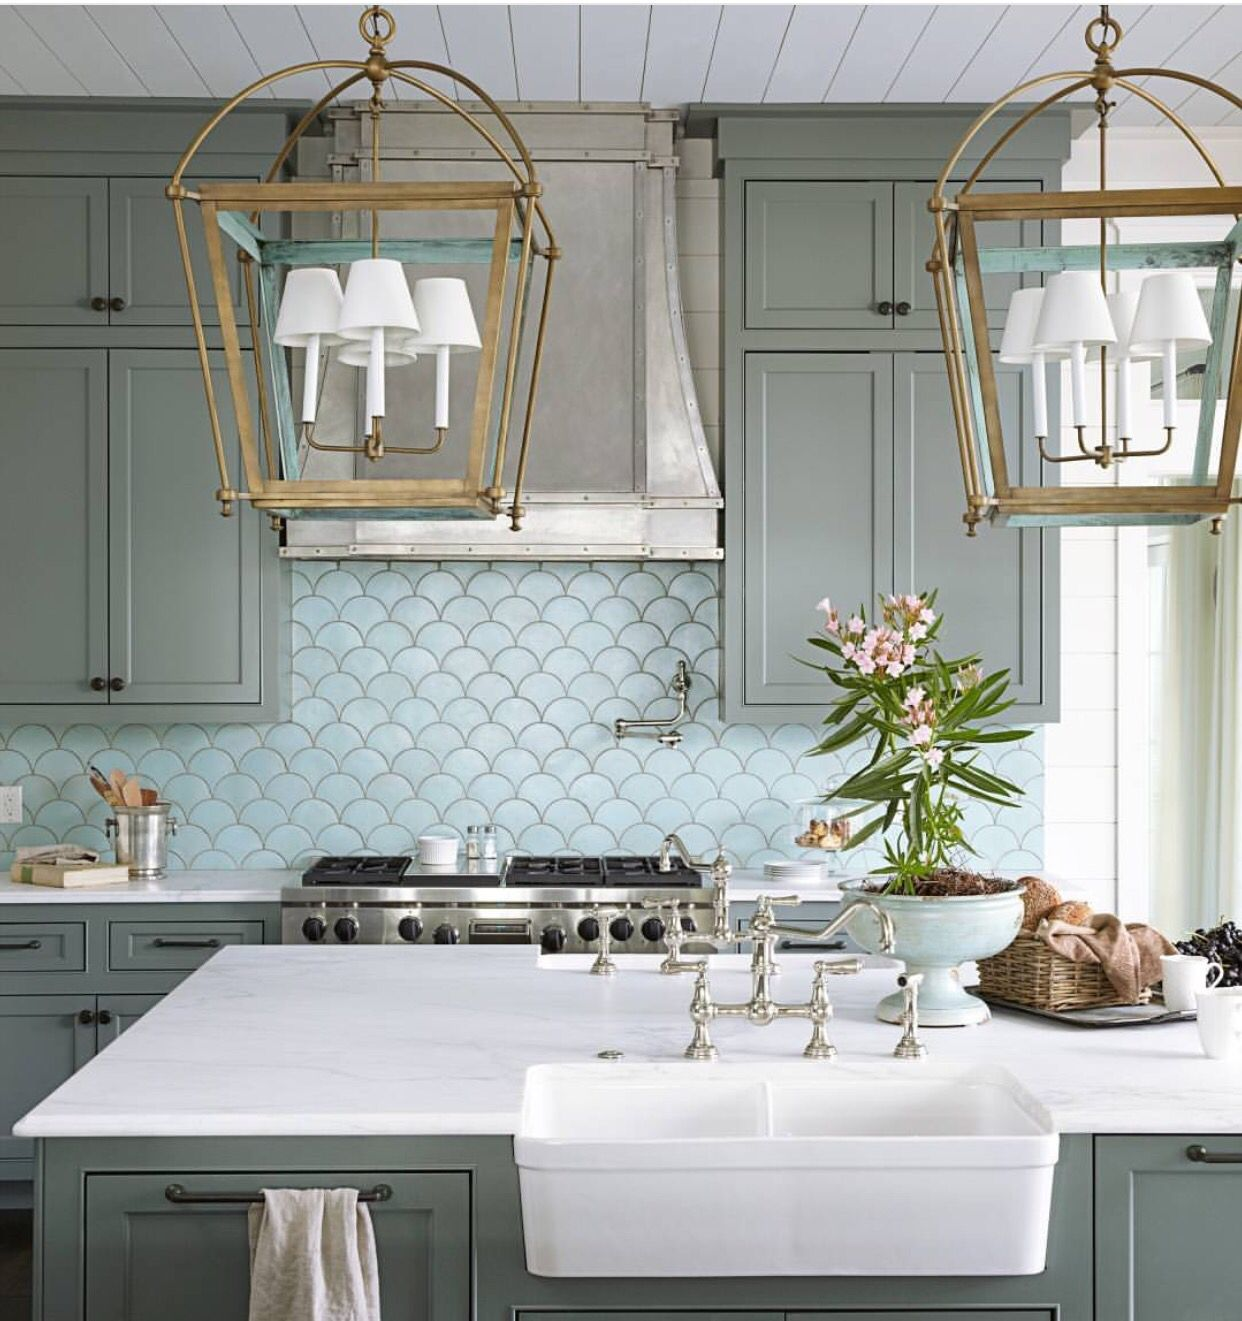 Vintage French Soul ~ | French Country Kitchen ⚜ | Pinterest ... on vintage french kitchen cabinets, vintage french kitchen furniture, vintage frames ideas, vintage french kitchen graphics, vintage french decorating, vintage rustic ideas, vintage family ideas, vintage studio apartment ideas, vintage flowers ideas, vintage french dining room, vintage french living rooms, vintage small kitchen ideas, vintage red kitchen ideas, vintage french kitchen island, vintage french windows, vintage french bathroom, vintage french country kitchen, vintage french kitchen tools, vintage french design, vintage farmhouse kitchen ideas,